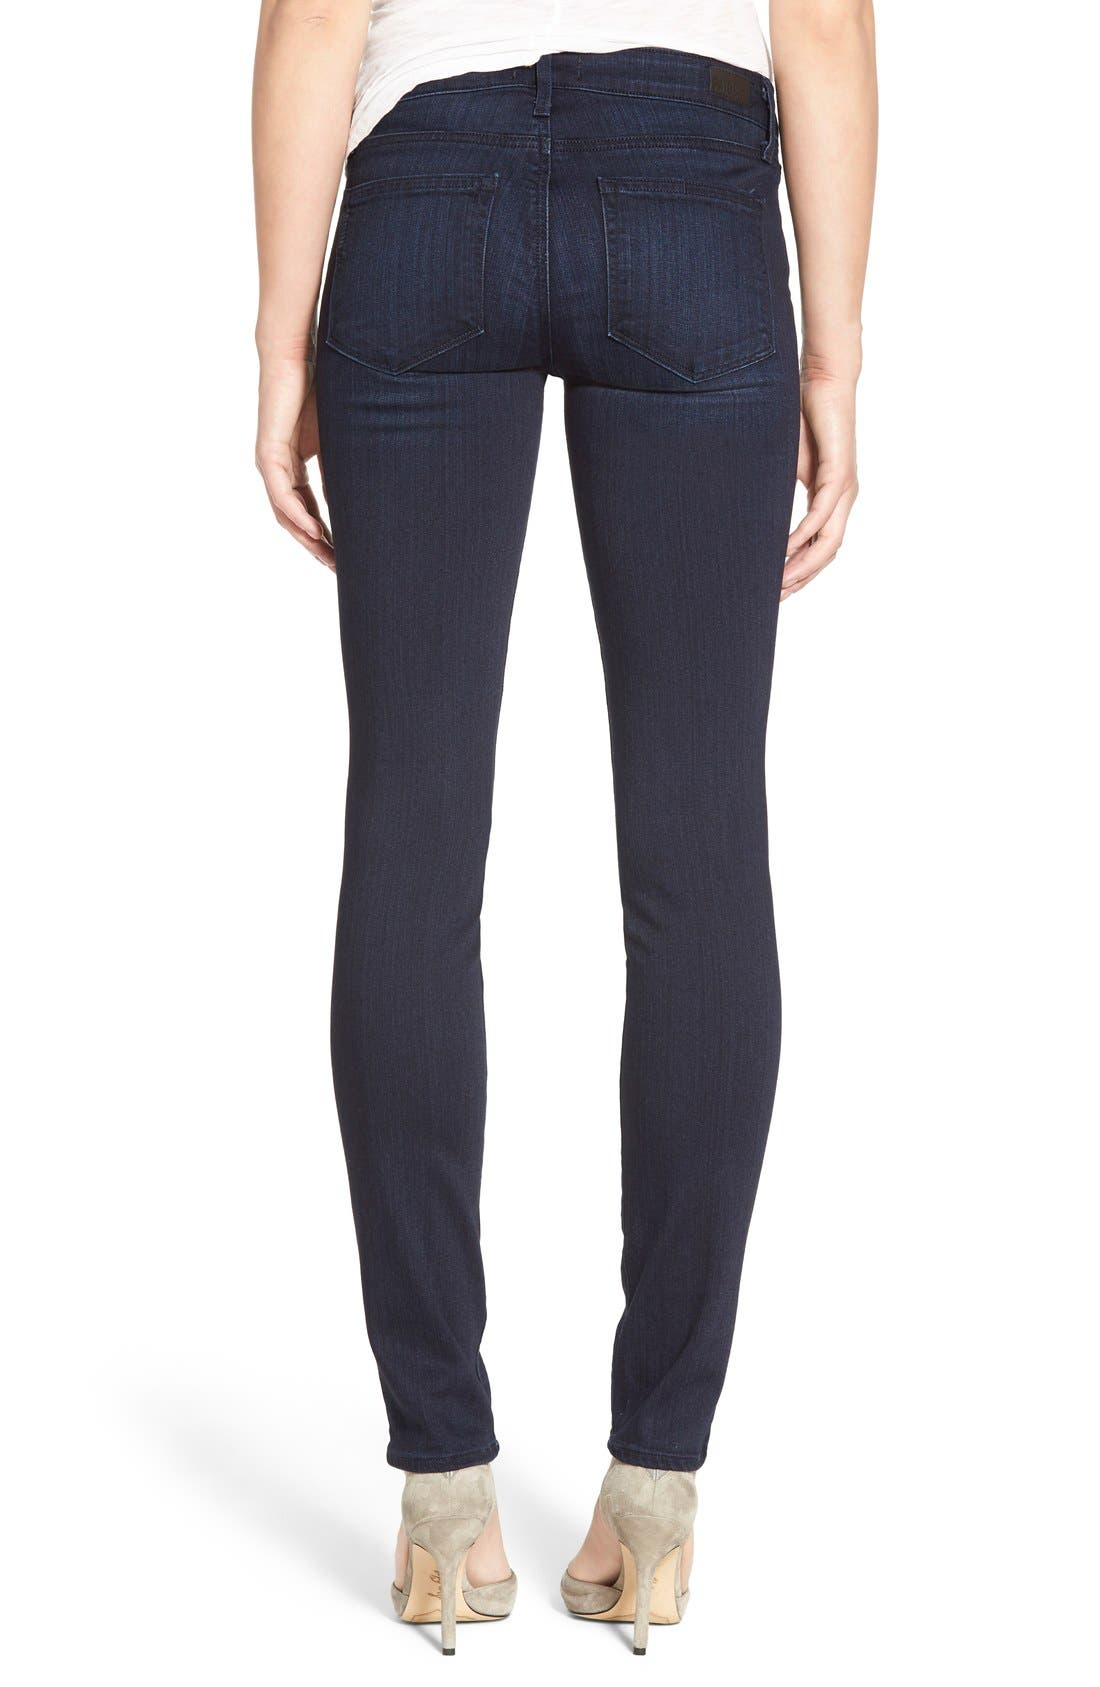 Alternate Image 2  - PAIGE 'Skyline' Skinny Jeans (Everdeen) (Nordstrom Exclusive)